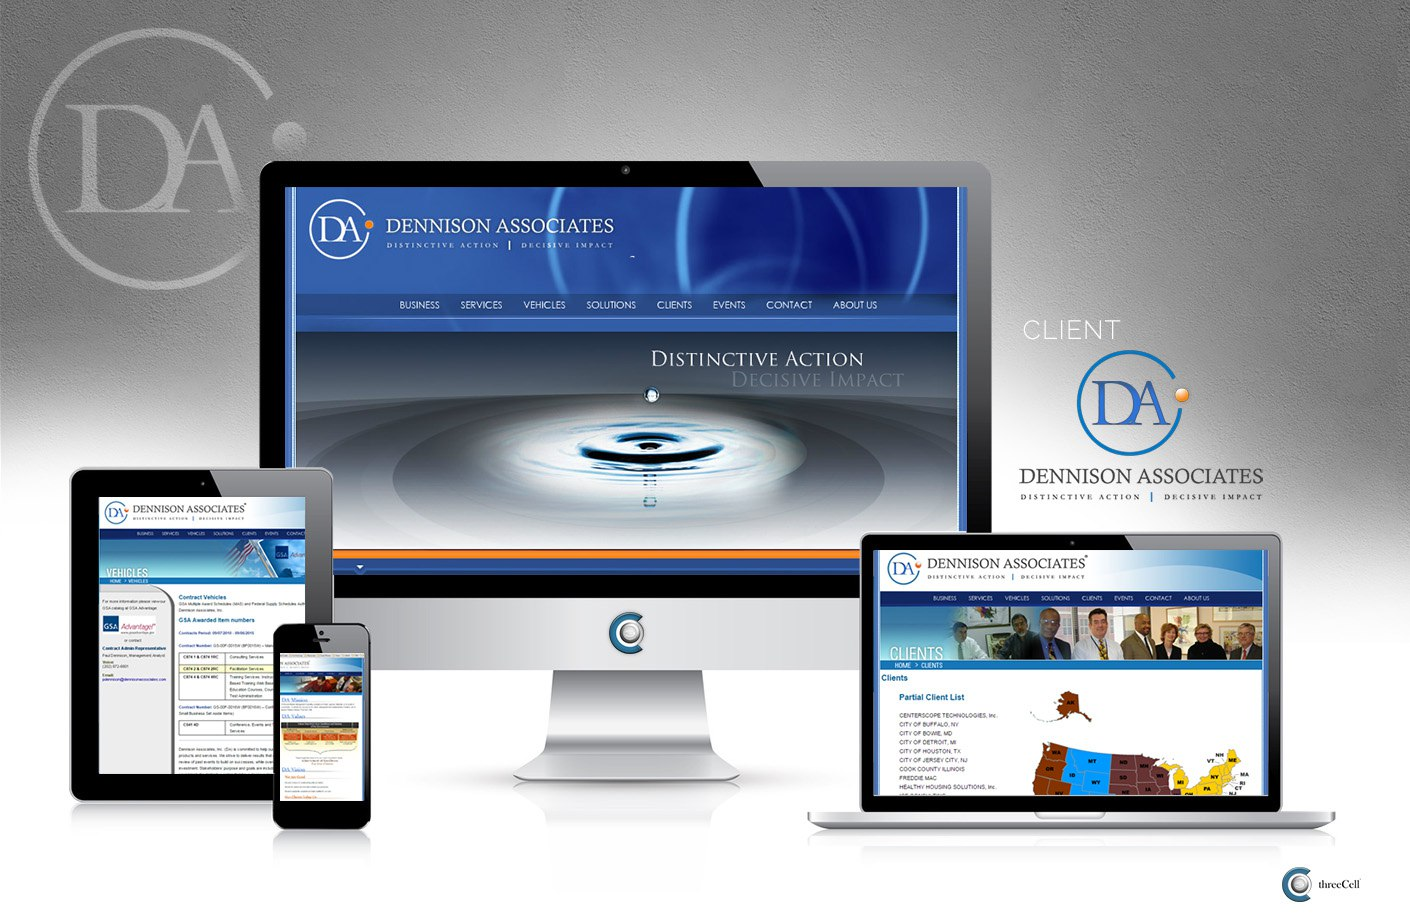 Dennison Associates - ThreeCell Web Design